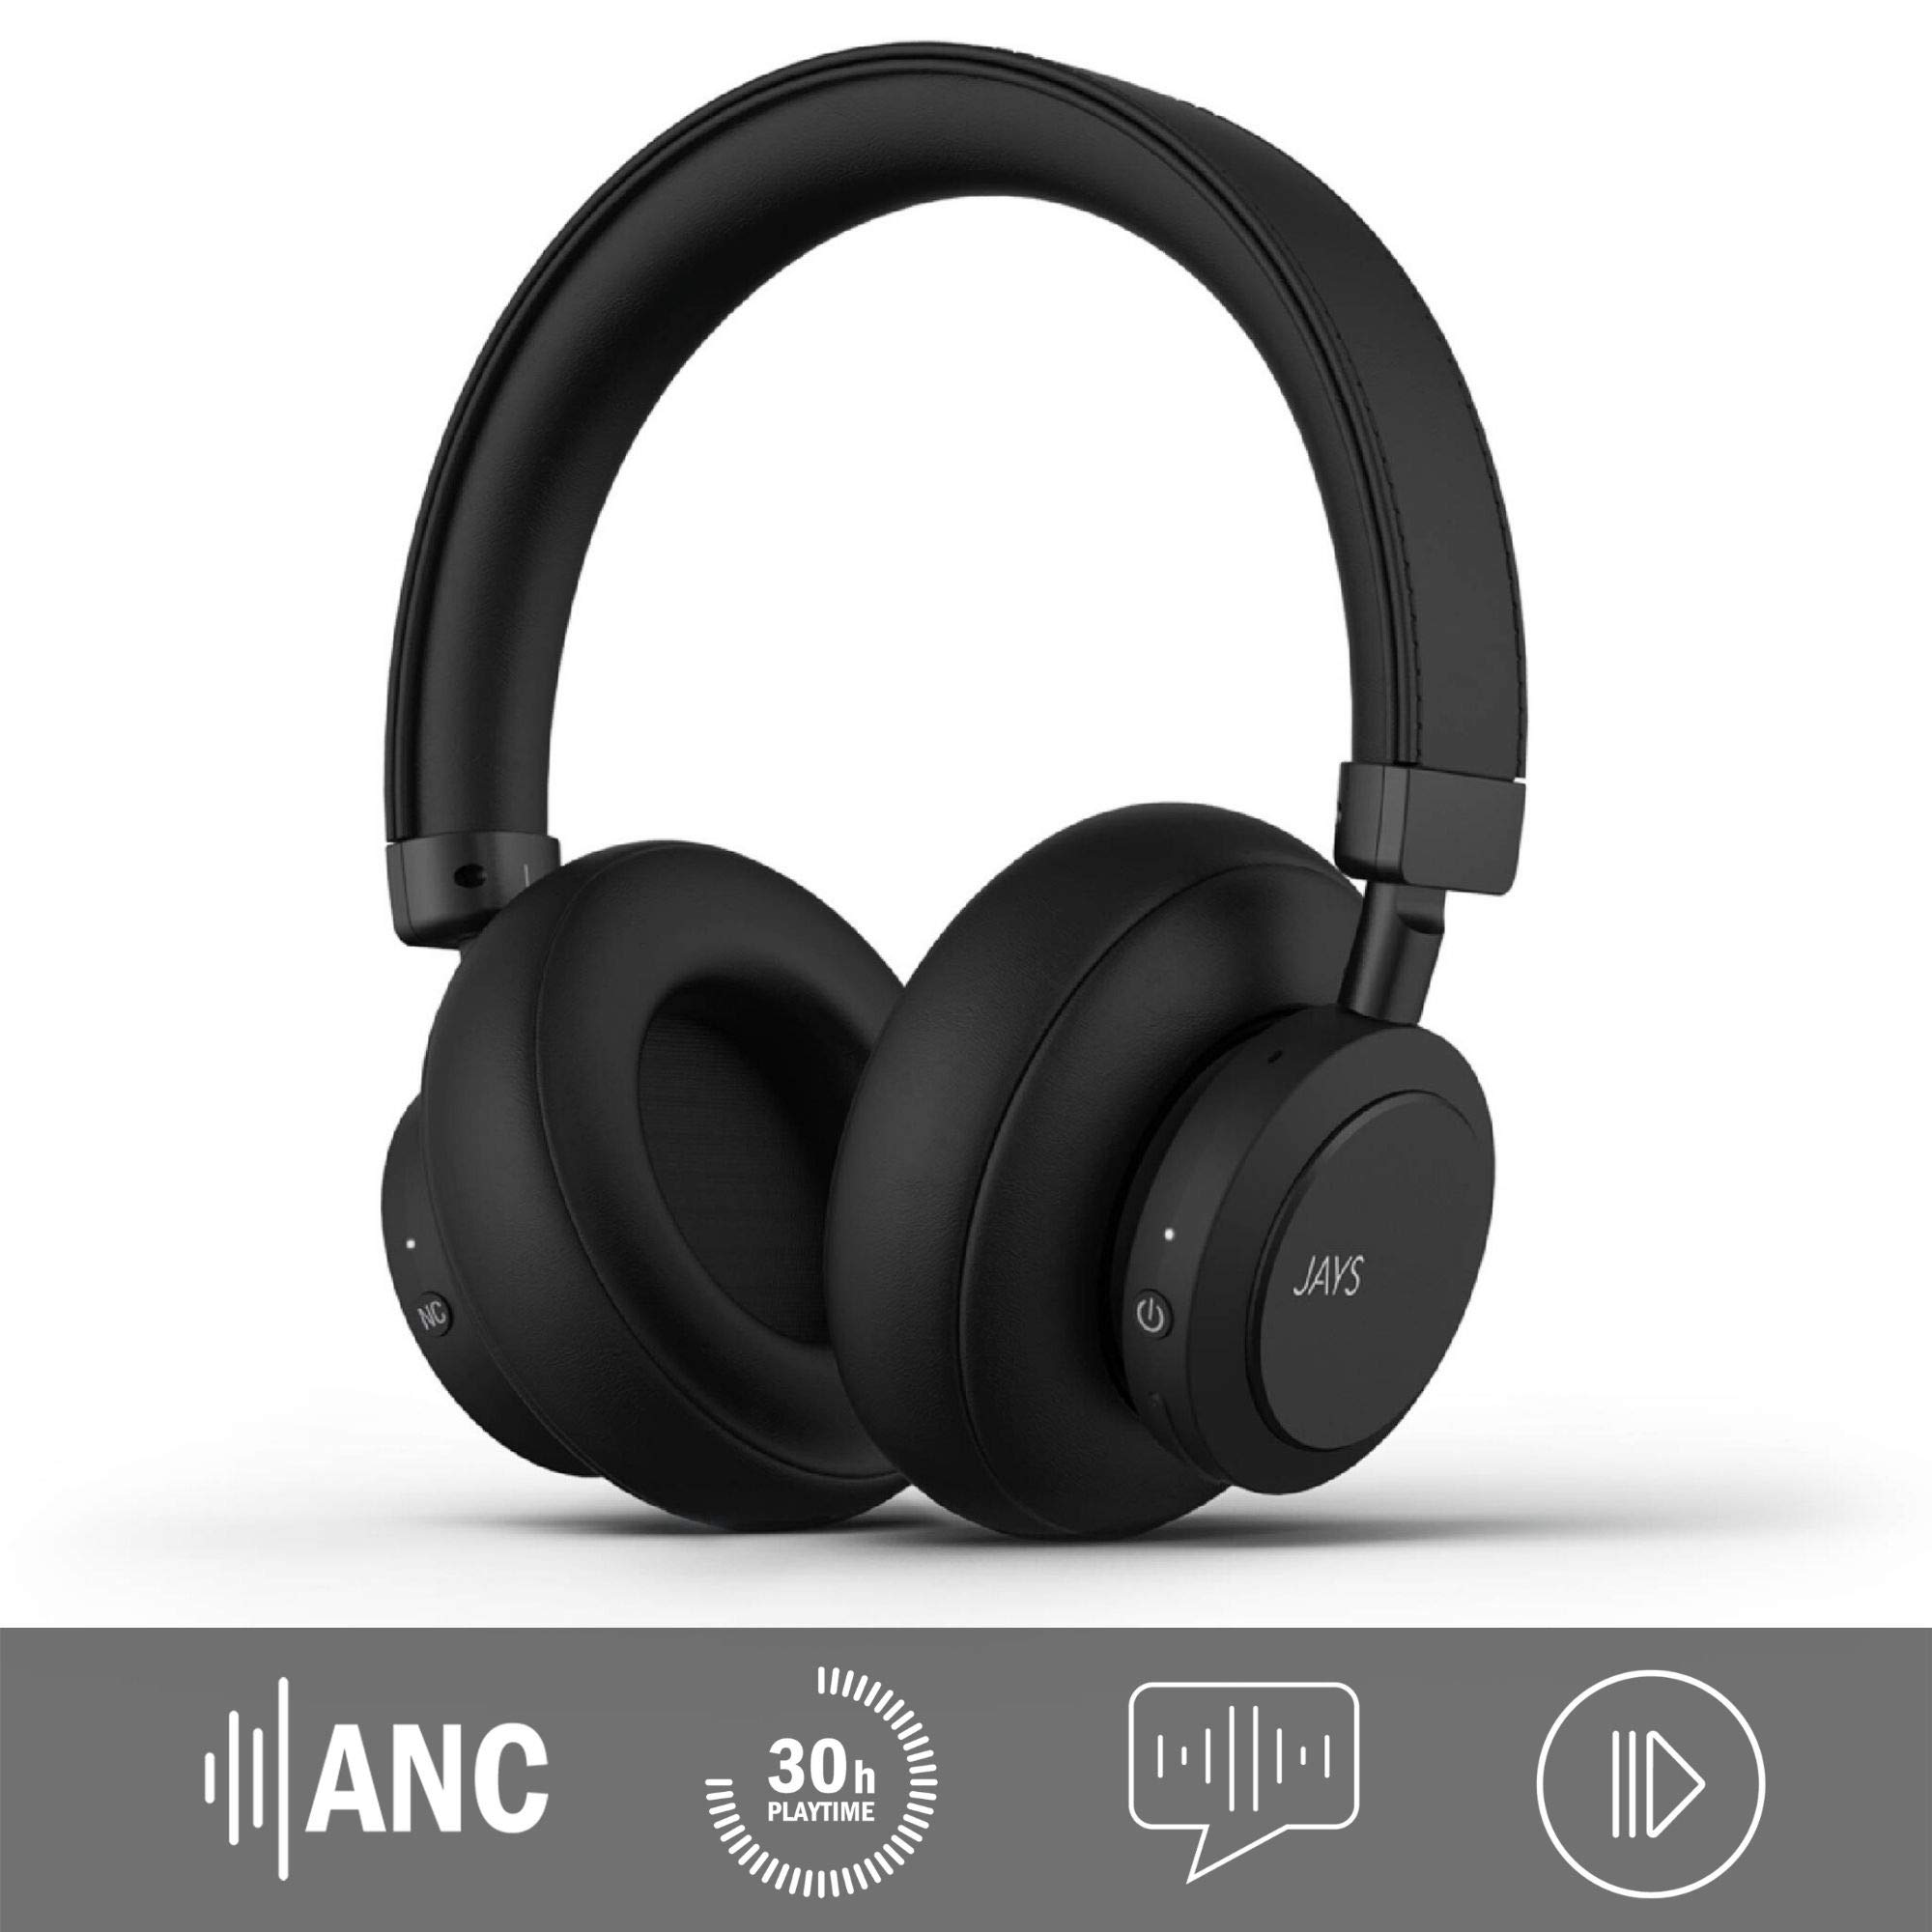 JAYS Noise Cancelling (ANC) Headphones Bluetooth - q-Seven - Black - Wireless Over-Ear 30hrs playtime & with Built-in Mic